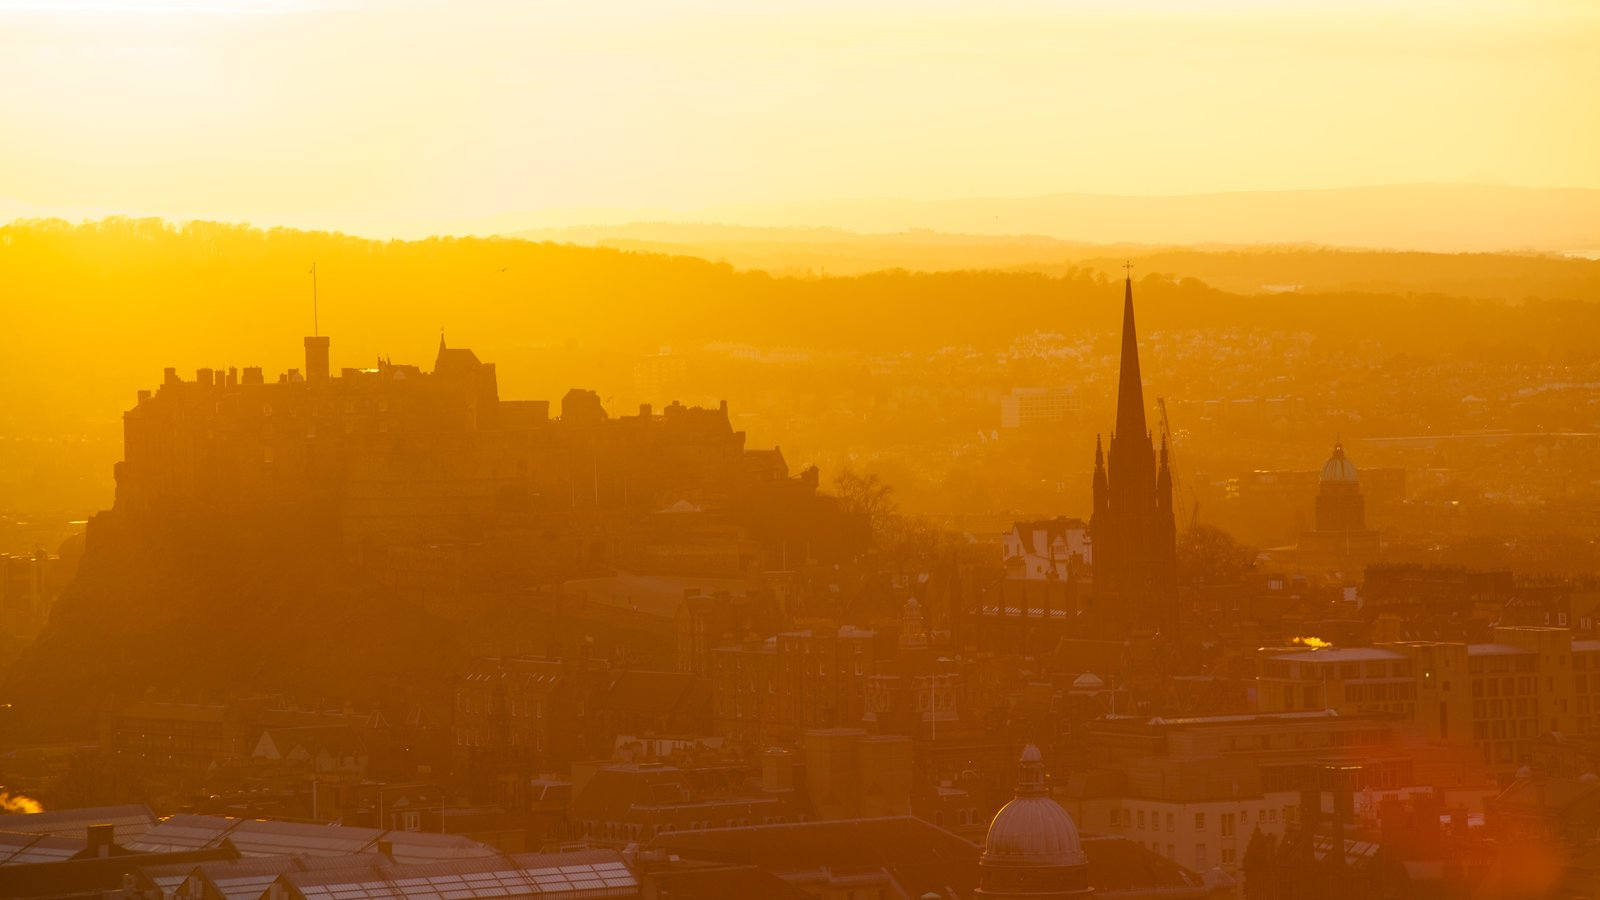 Arthur\'s Seat showing a sunset, views and heritage architecture